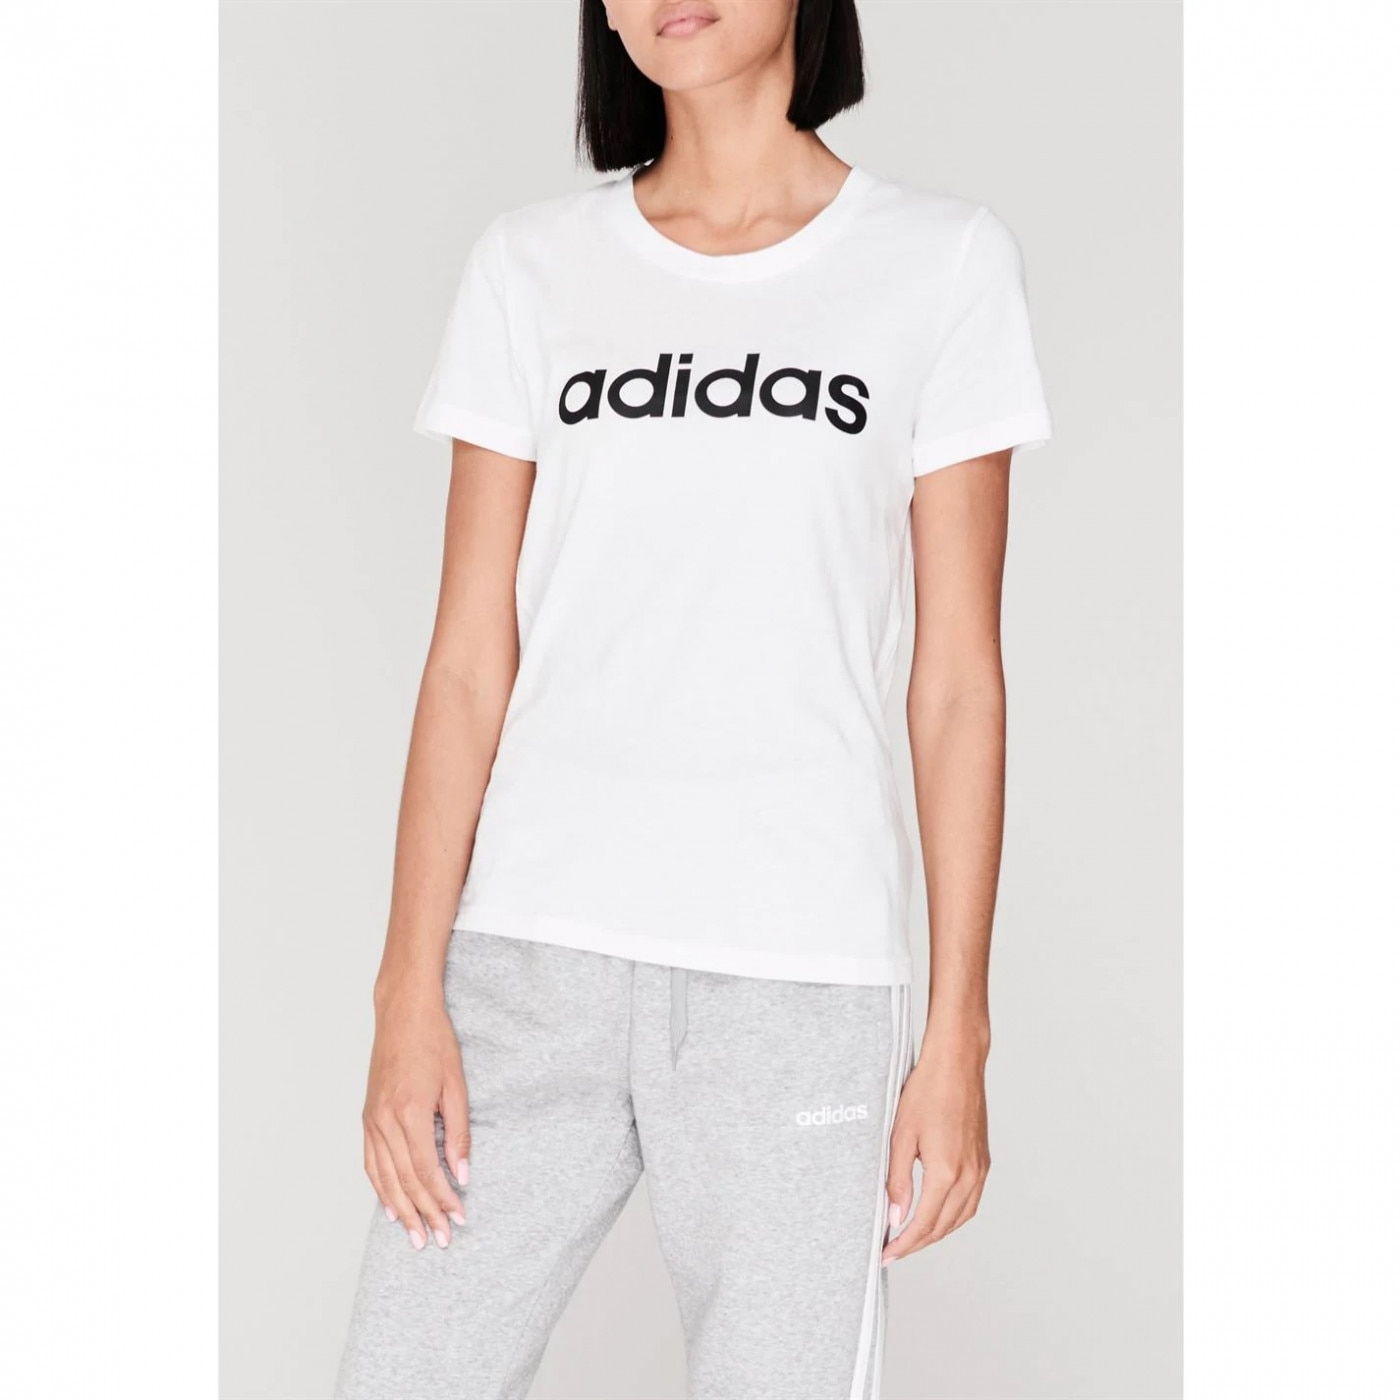 Women's T-shirt Adidas Linear QT